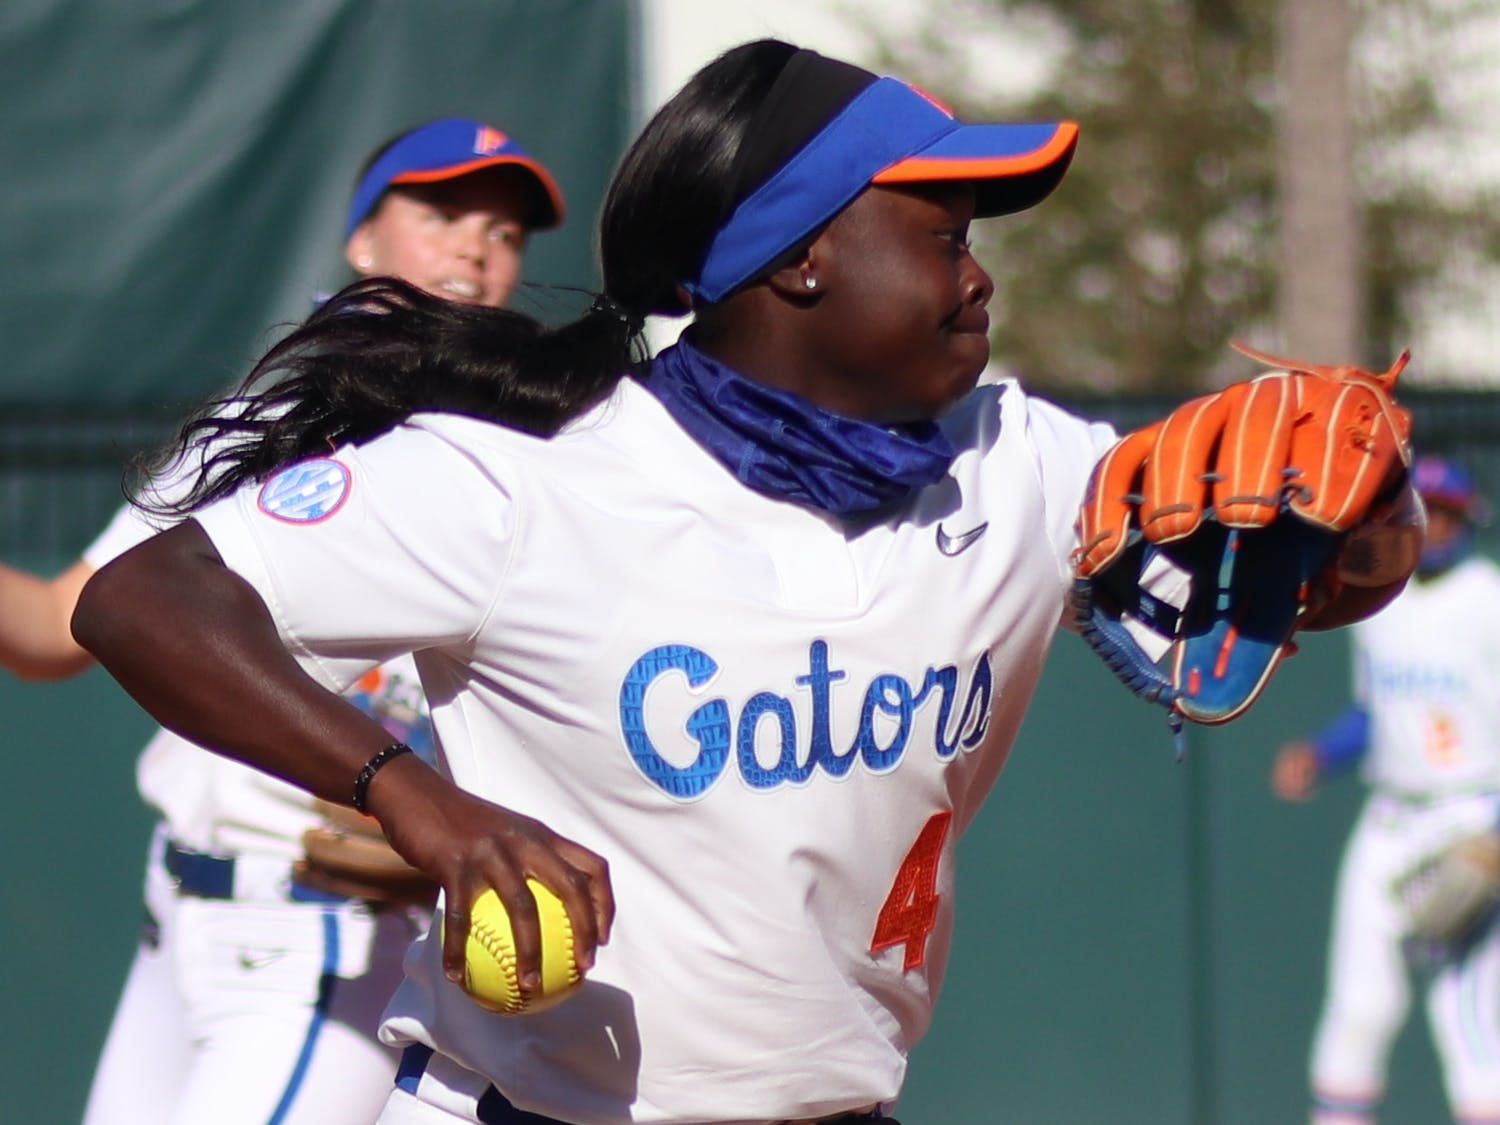 On paper, it appears the Gators won't have much trouble with the Fighting Hawks. Photo from UF-FSU game March 3.